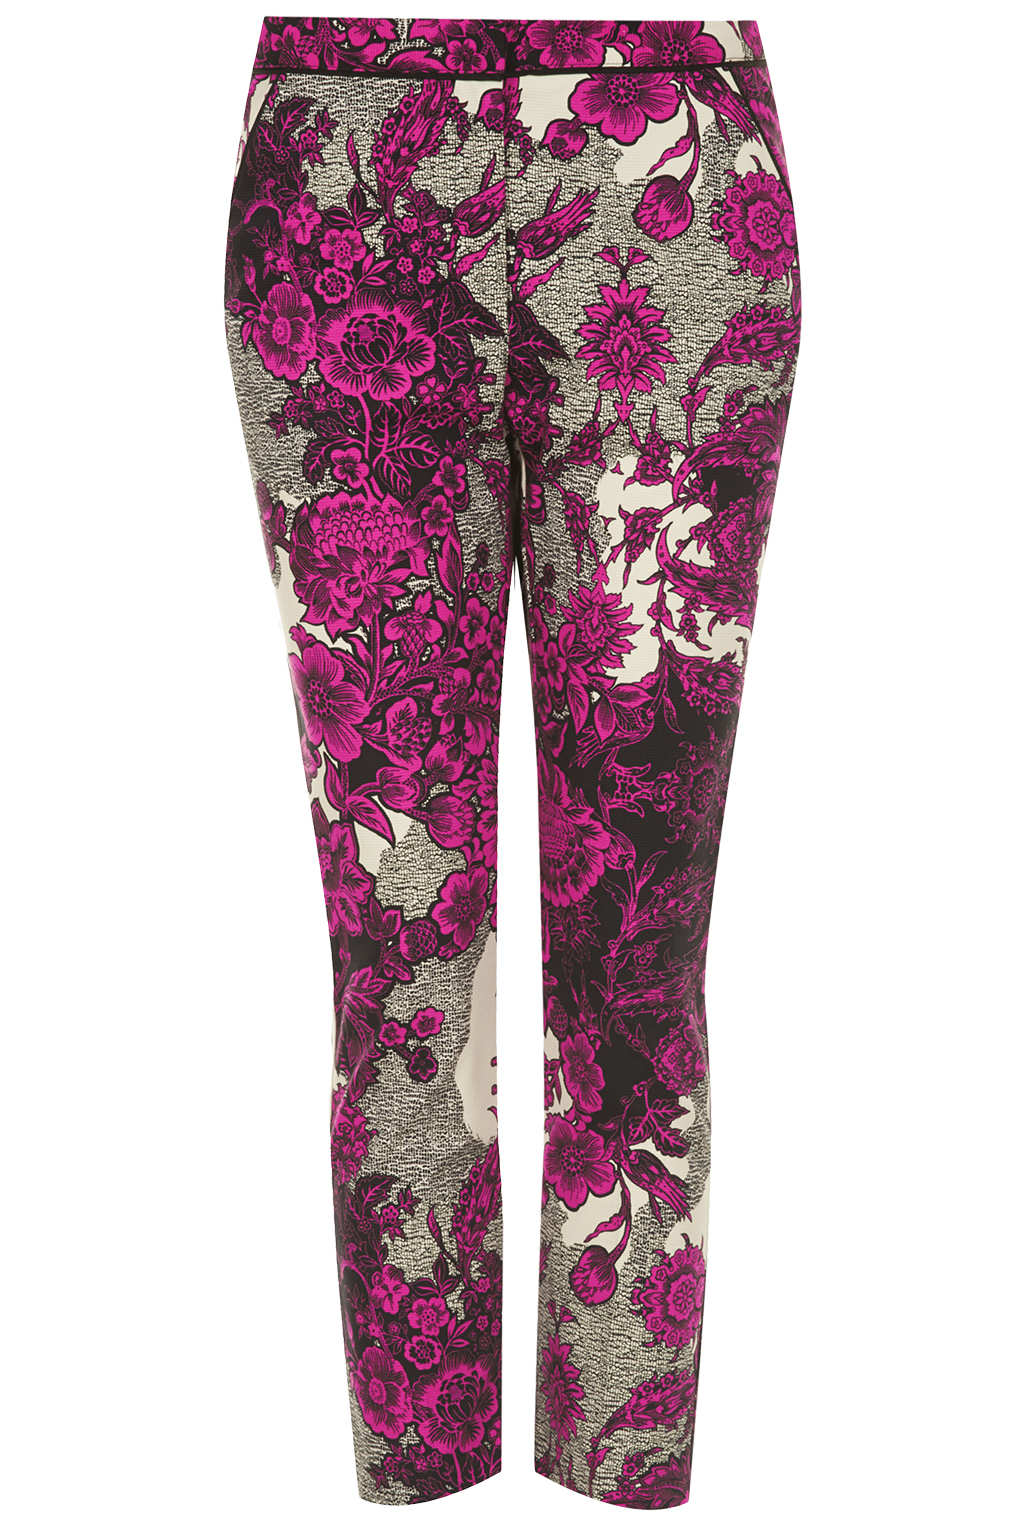 Lyst Topshop Oriental Floral Cigarette Trousers In Pink